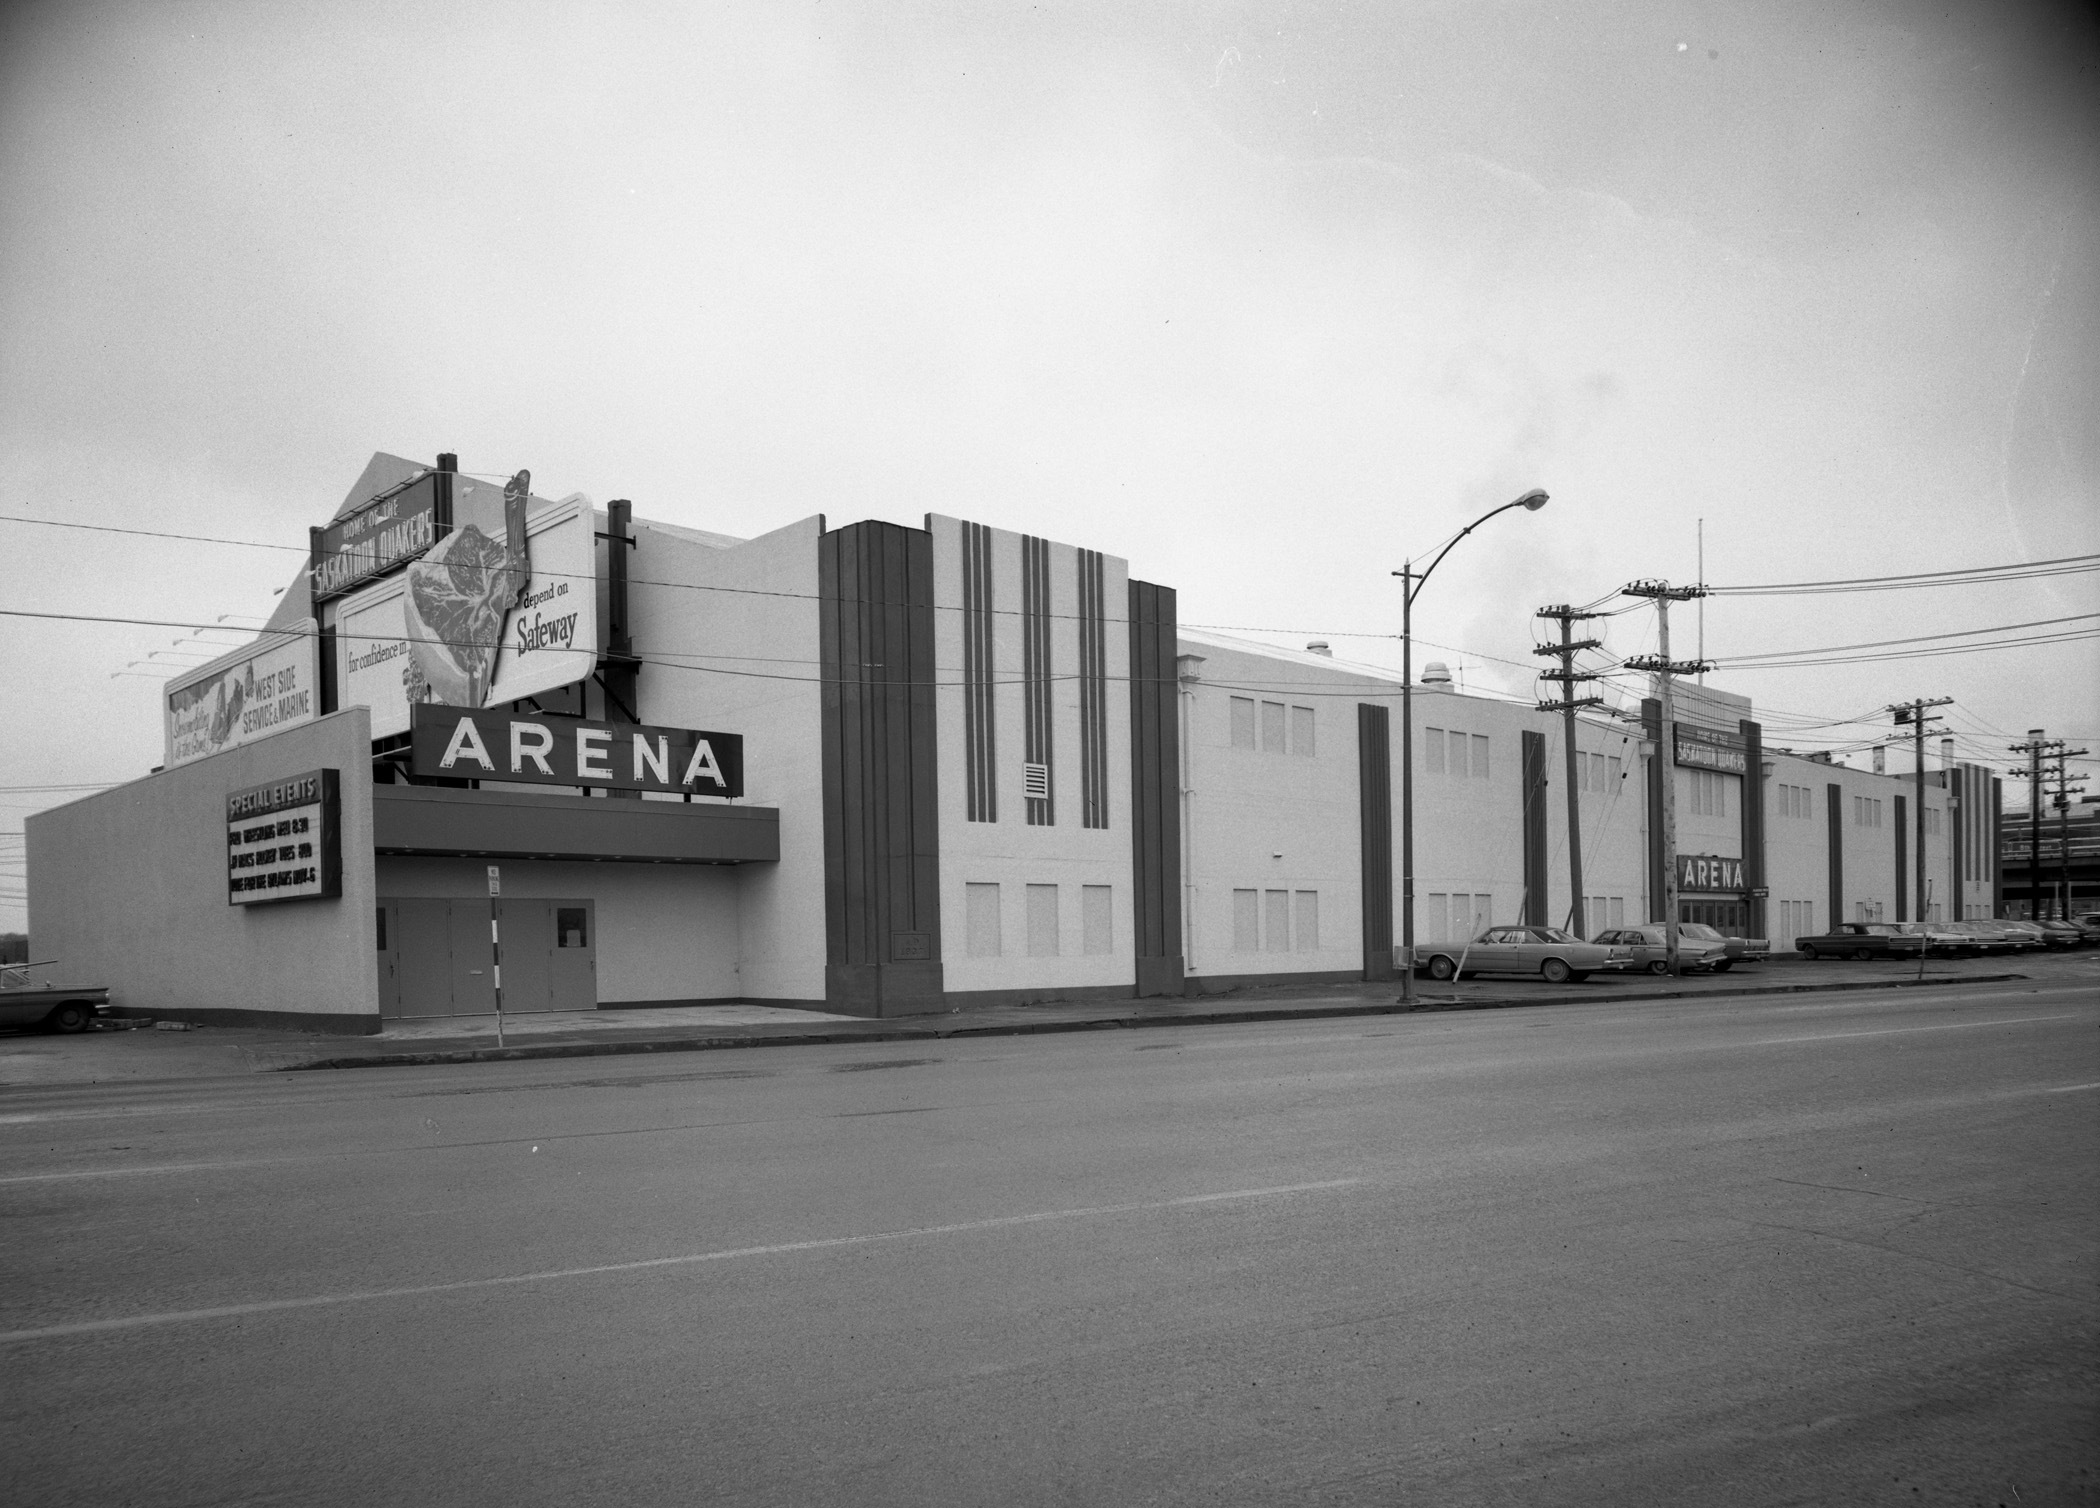 Saskatoon Arena, photographed in 1968, 20 years before its demolition. The arena was located at the corner of 19th Street and 1st Avenue. (Saskatoon Public Library Local History Room - Photo CP-5563)